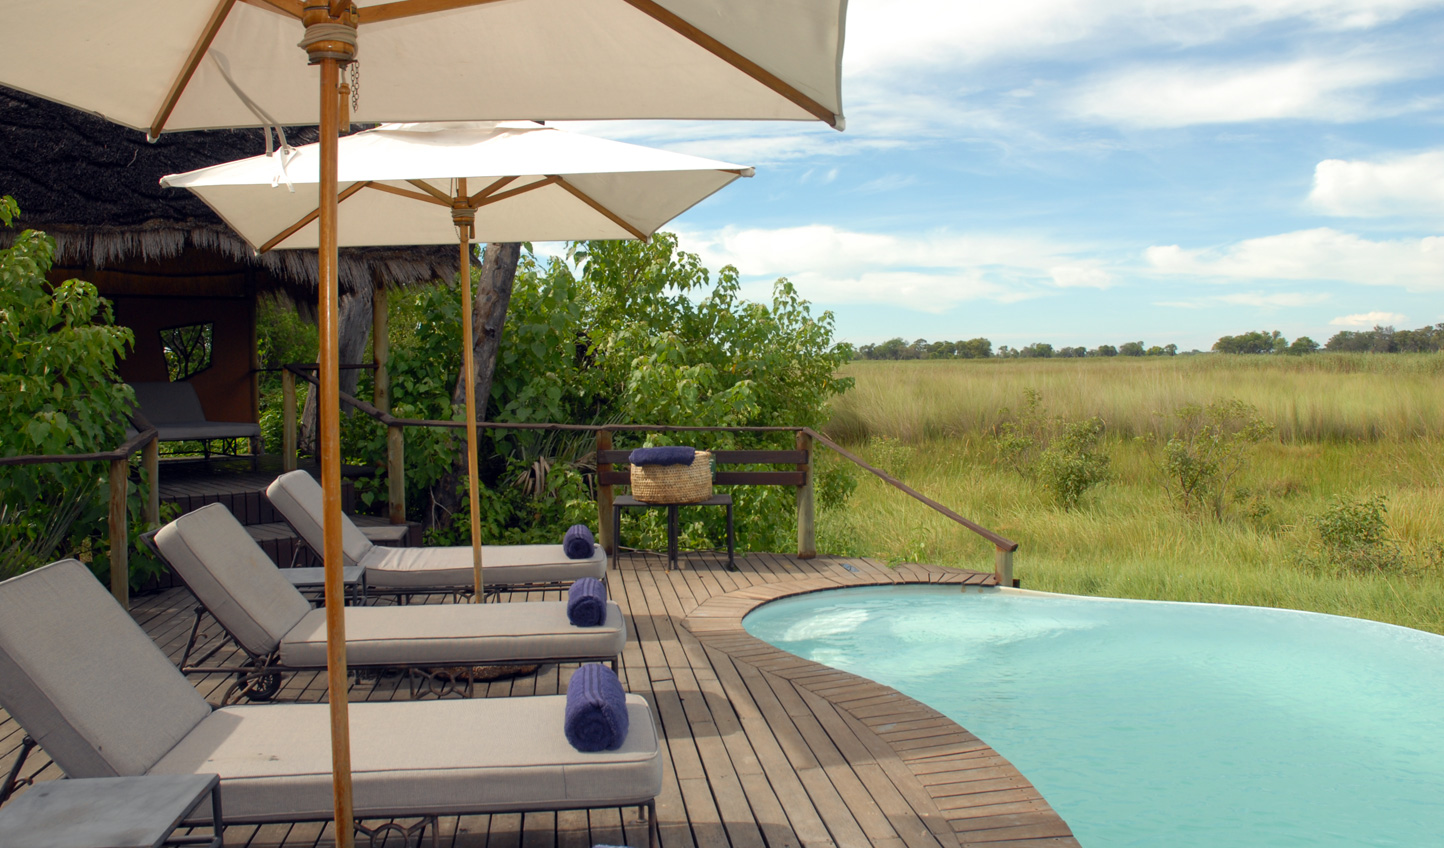 Relax by the pool looking out over the Okavango Delta